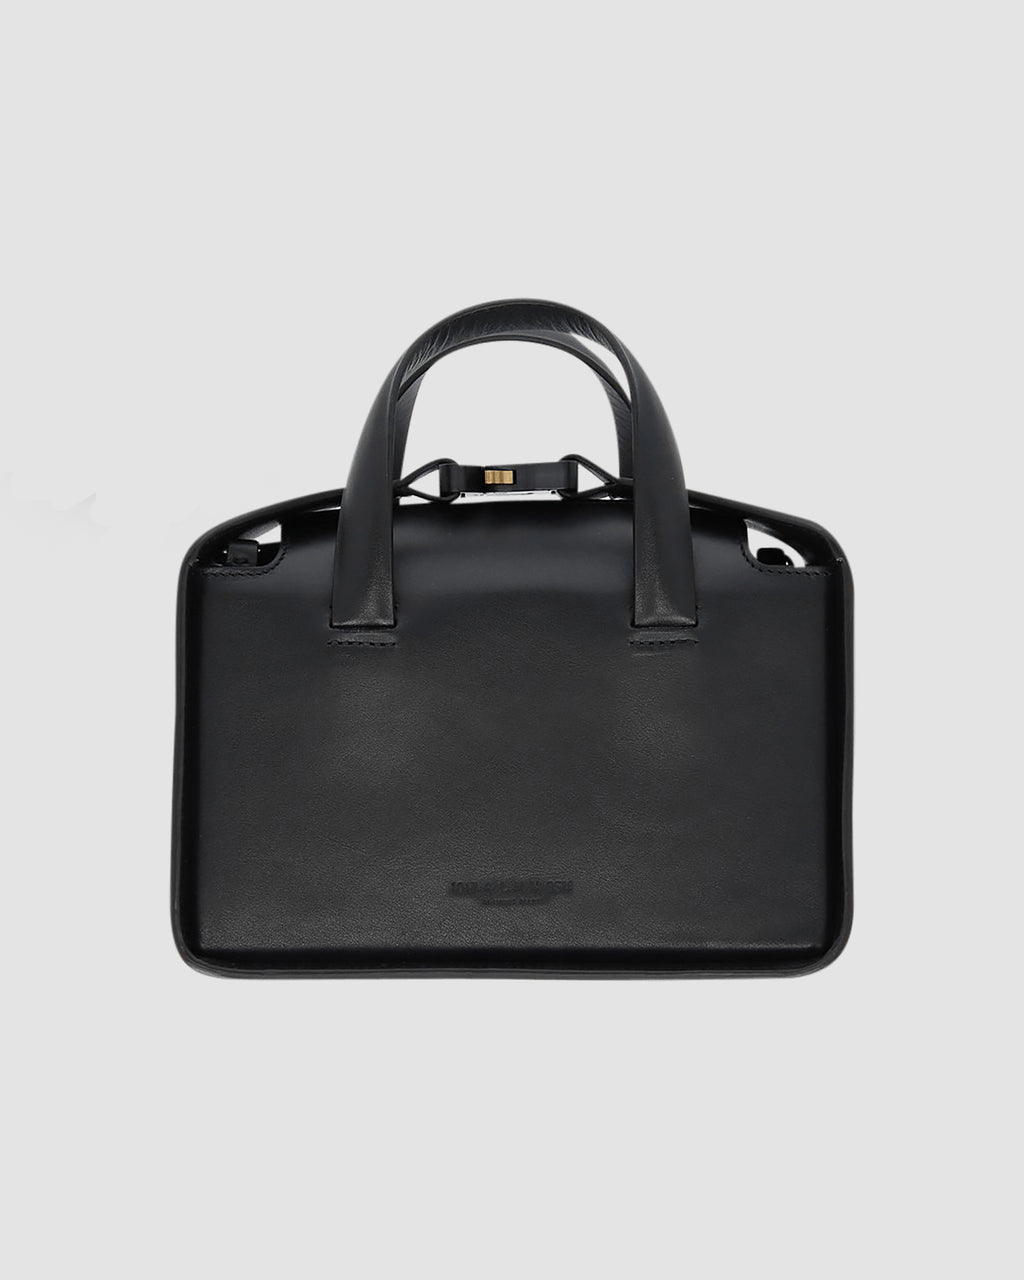 1017 ALYX 9SM | BRIE BAG | Bag | Accessories, Bag Online, Bags, BLACK, Google Shopping, HAND BAGS, S20, S20EXSH, Woman, WOMEN